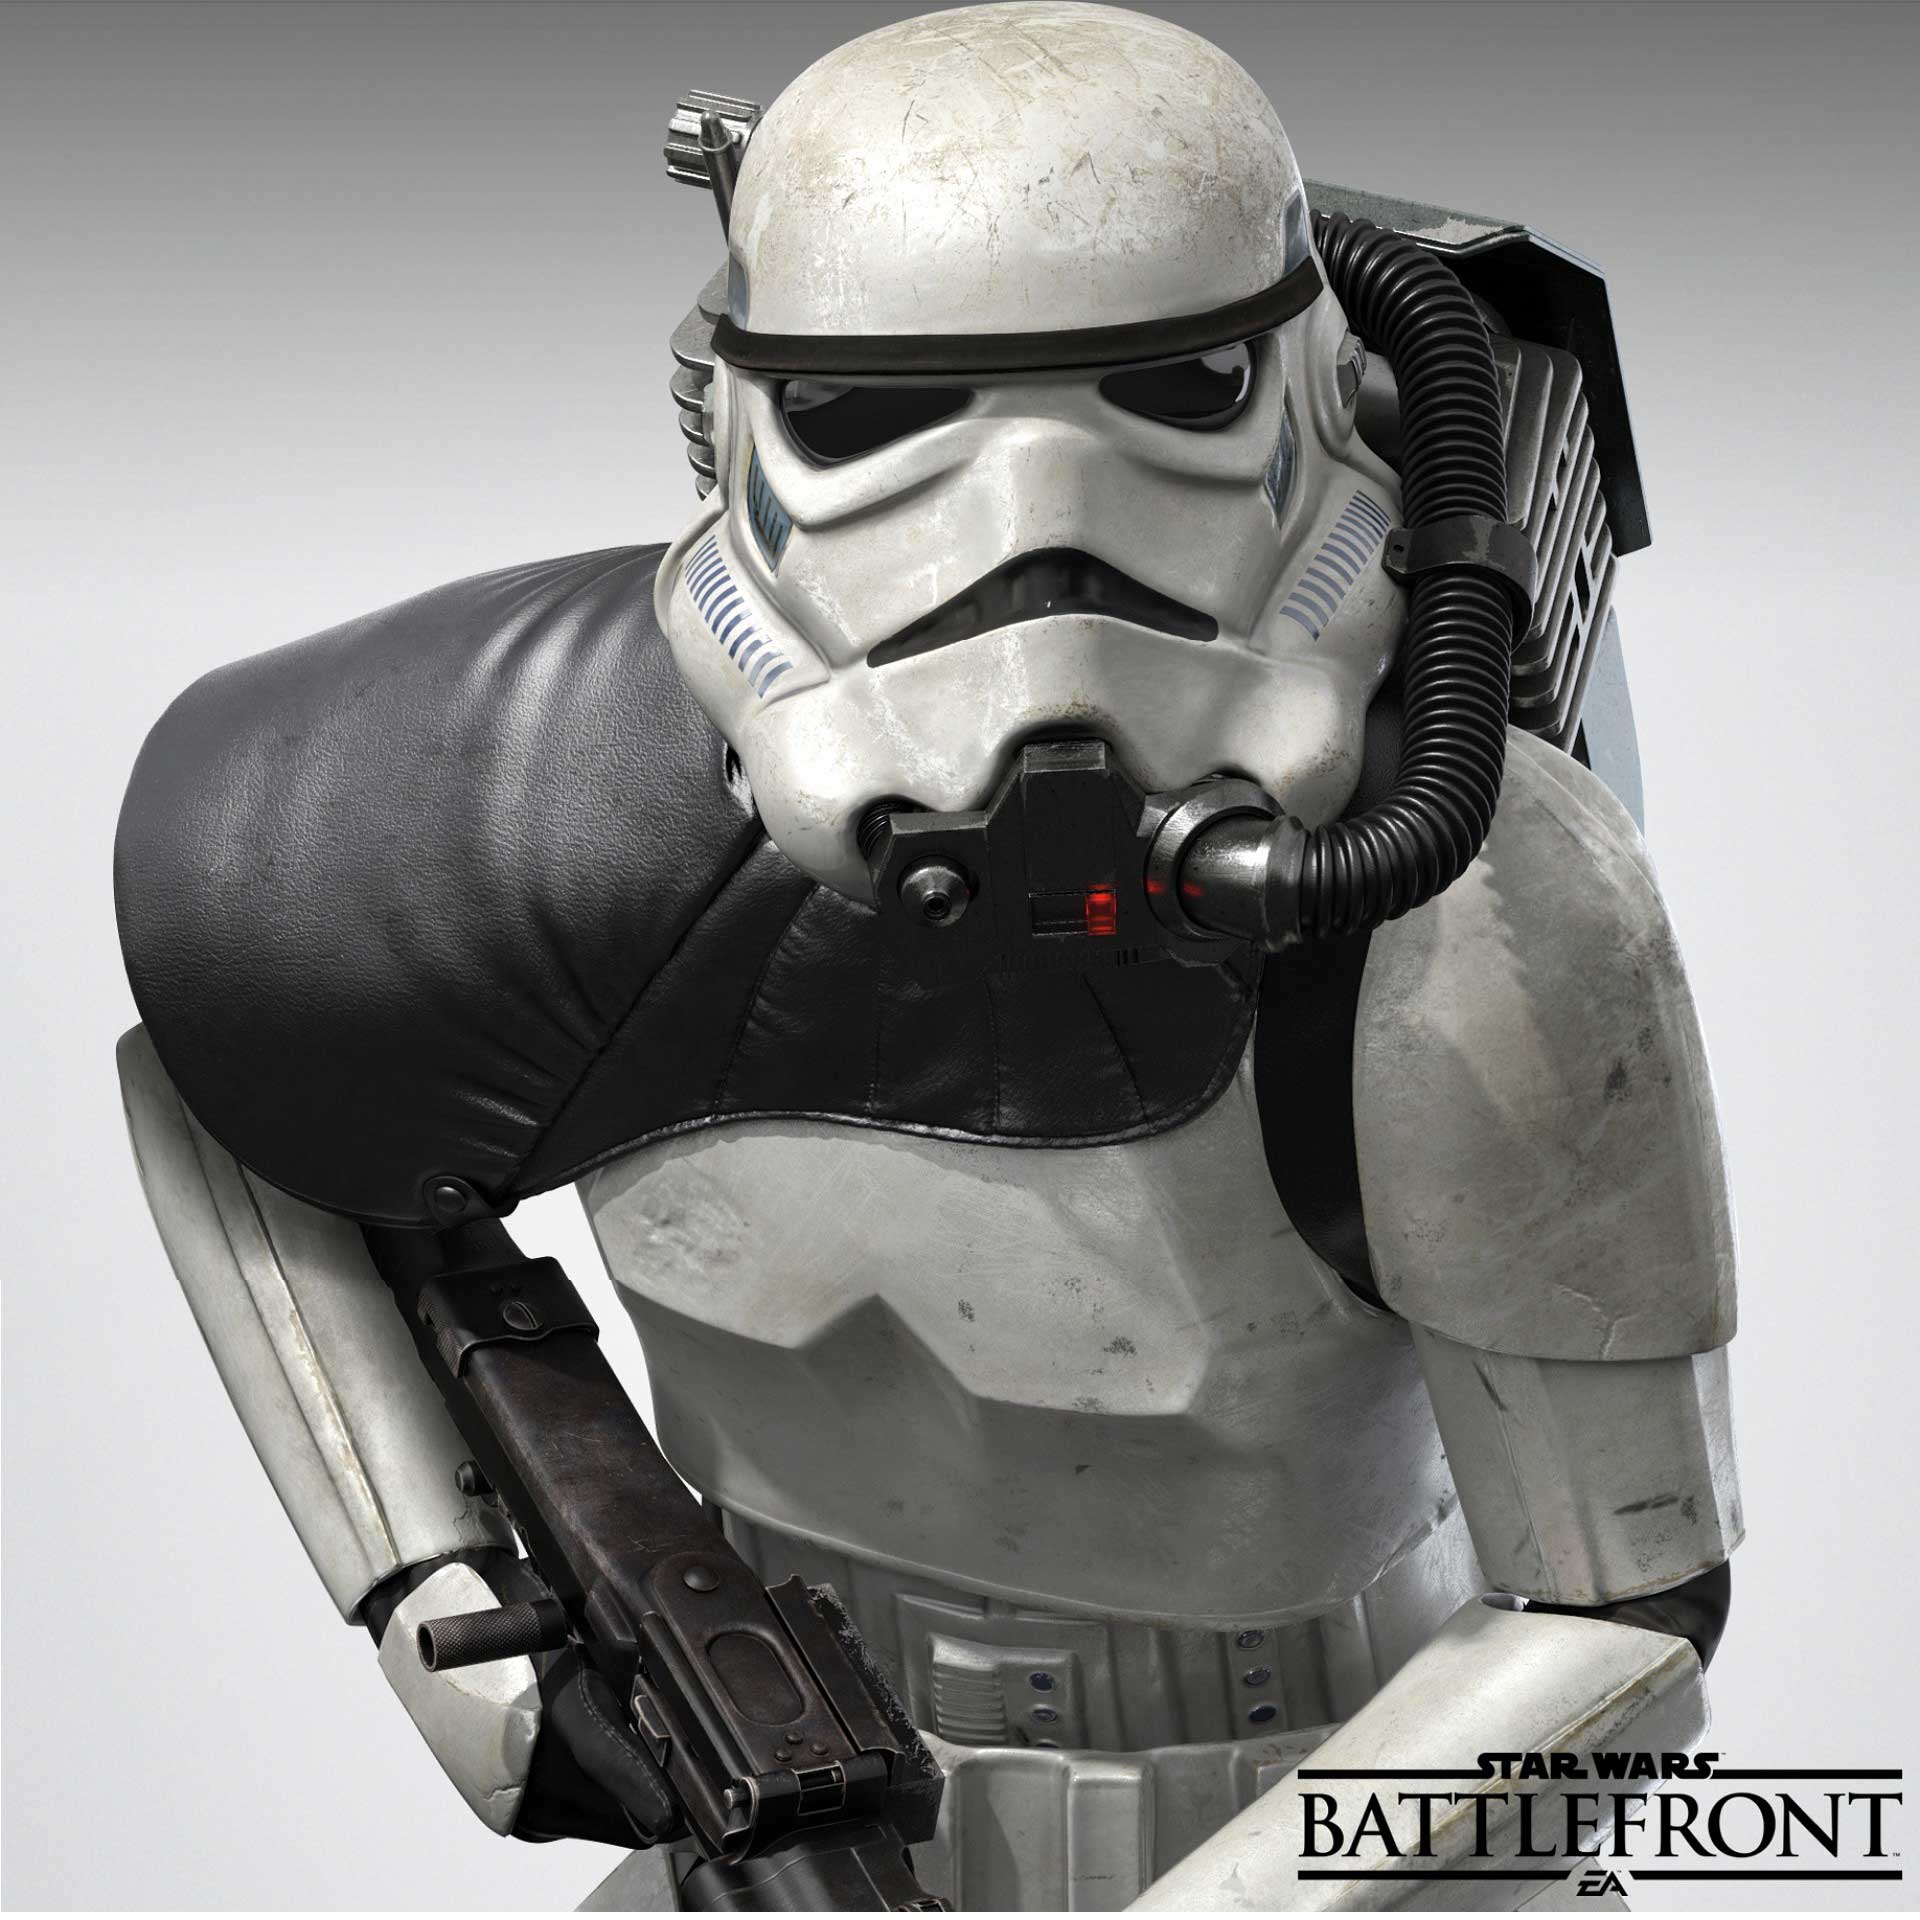 Star Wars Battlefront gameplay reveal to be streamed live ...